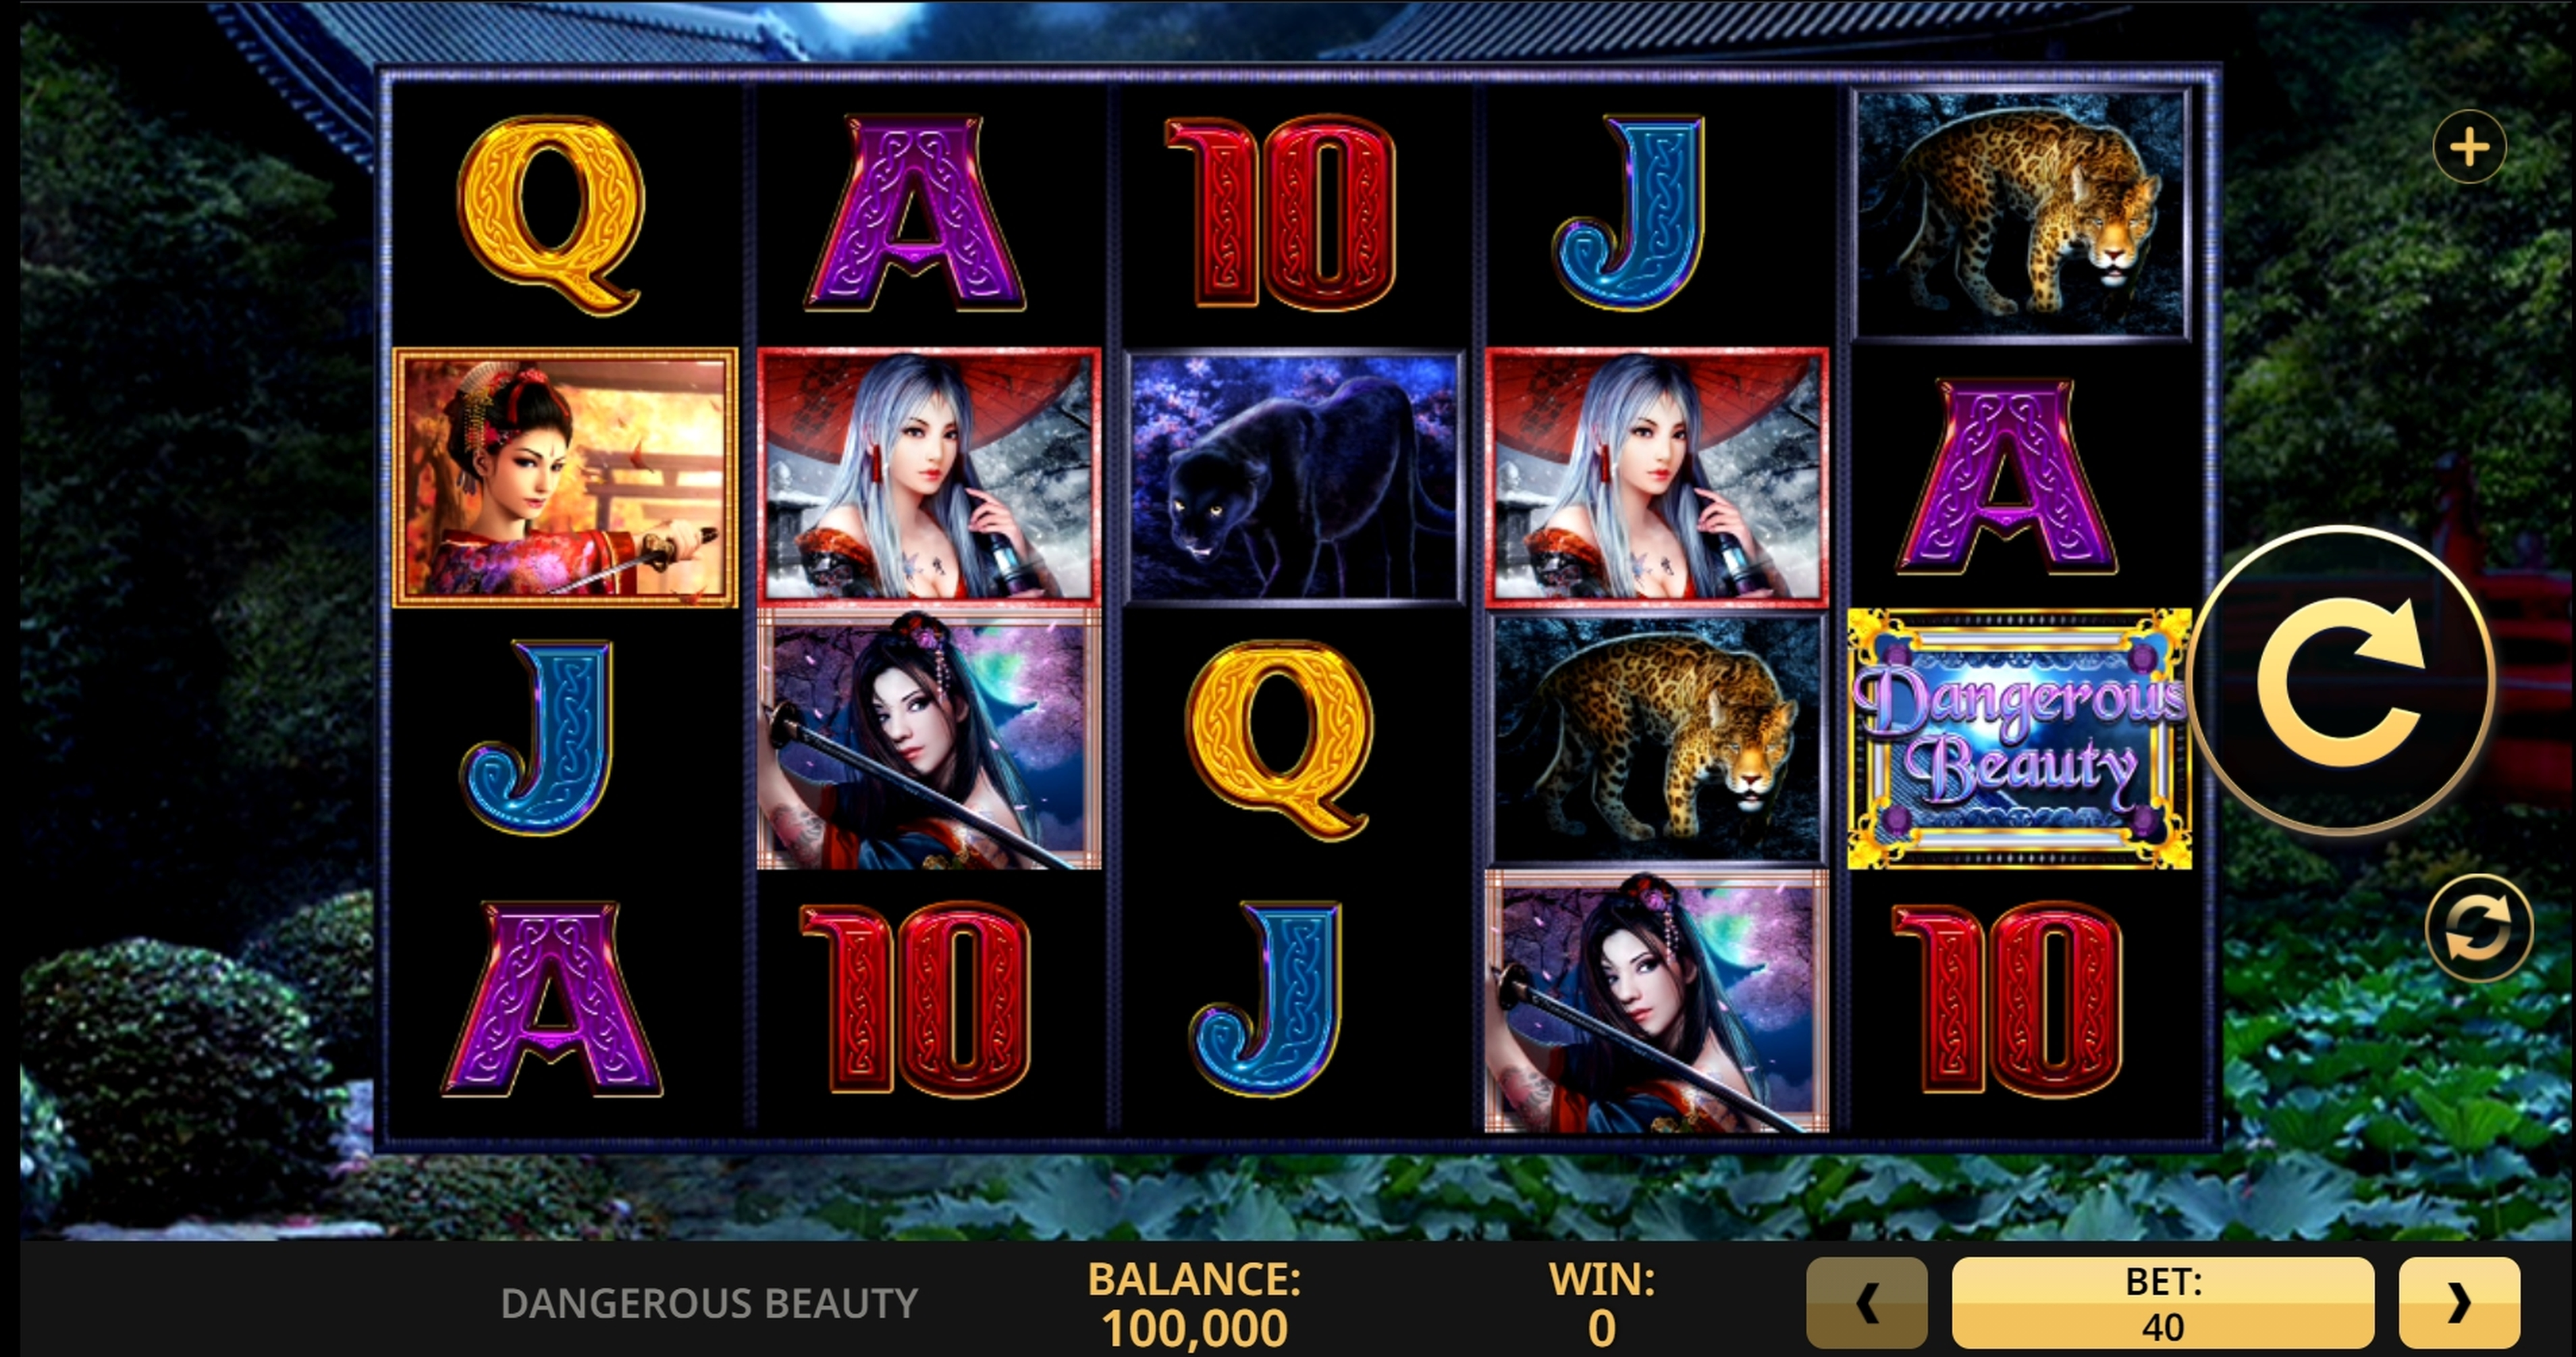 Reels in Dangerous Beauty Slot Game by High 5 Games